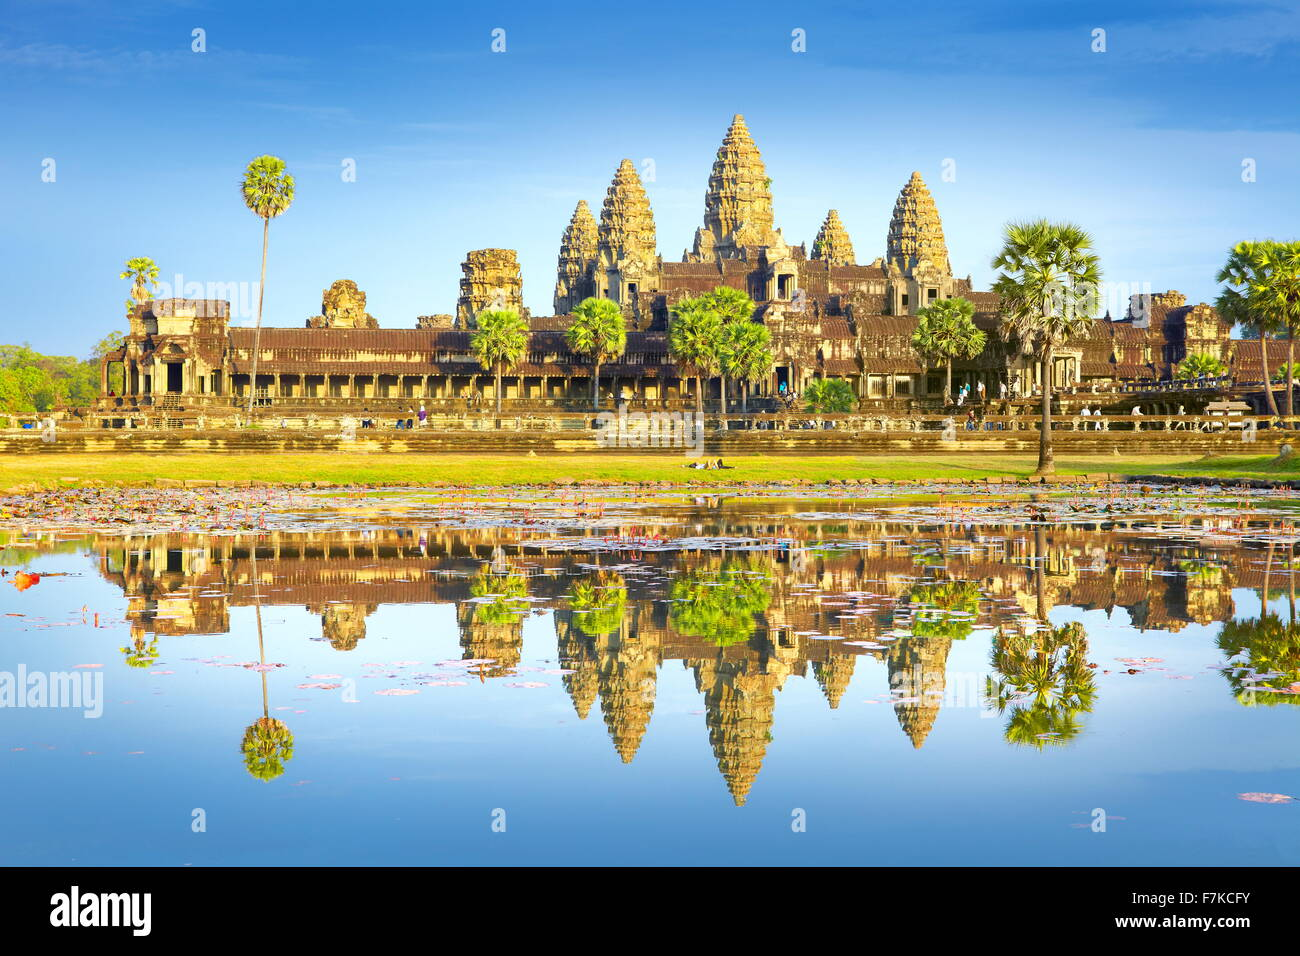 Angkor - monumental city which remained after the old capital of Khmer Empire, Cambodia, Angkor Wat Temple, Asia - Stock Image